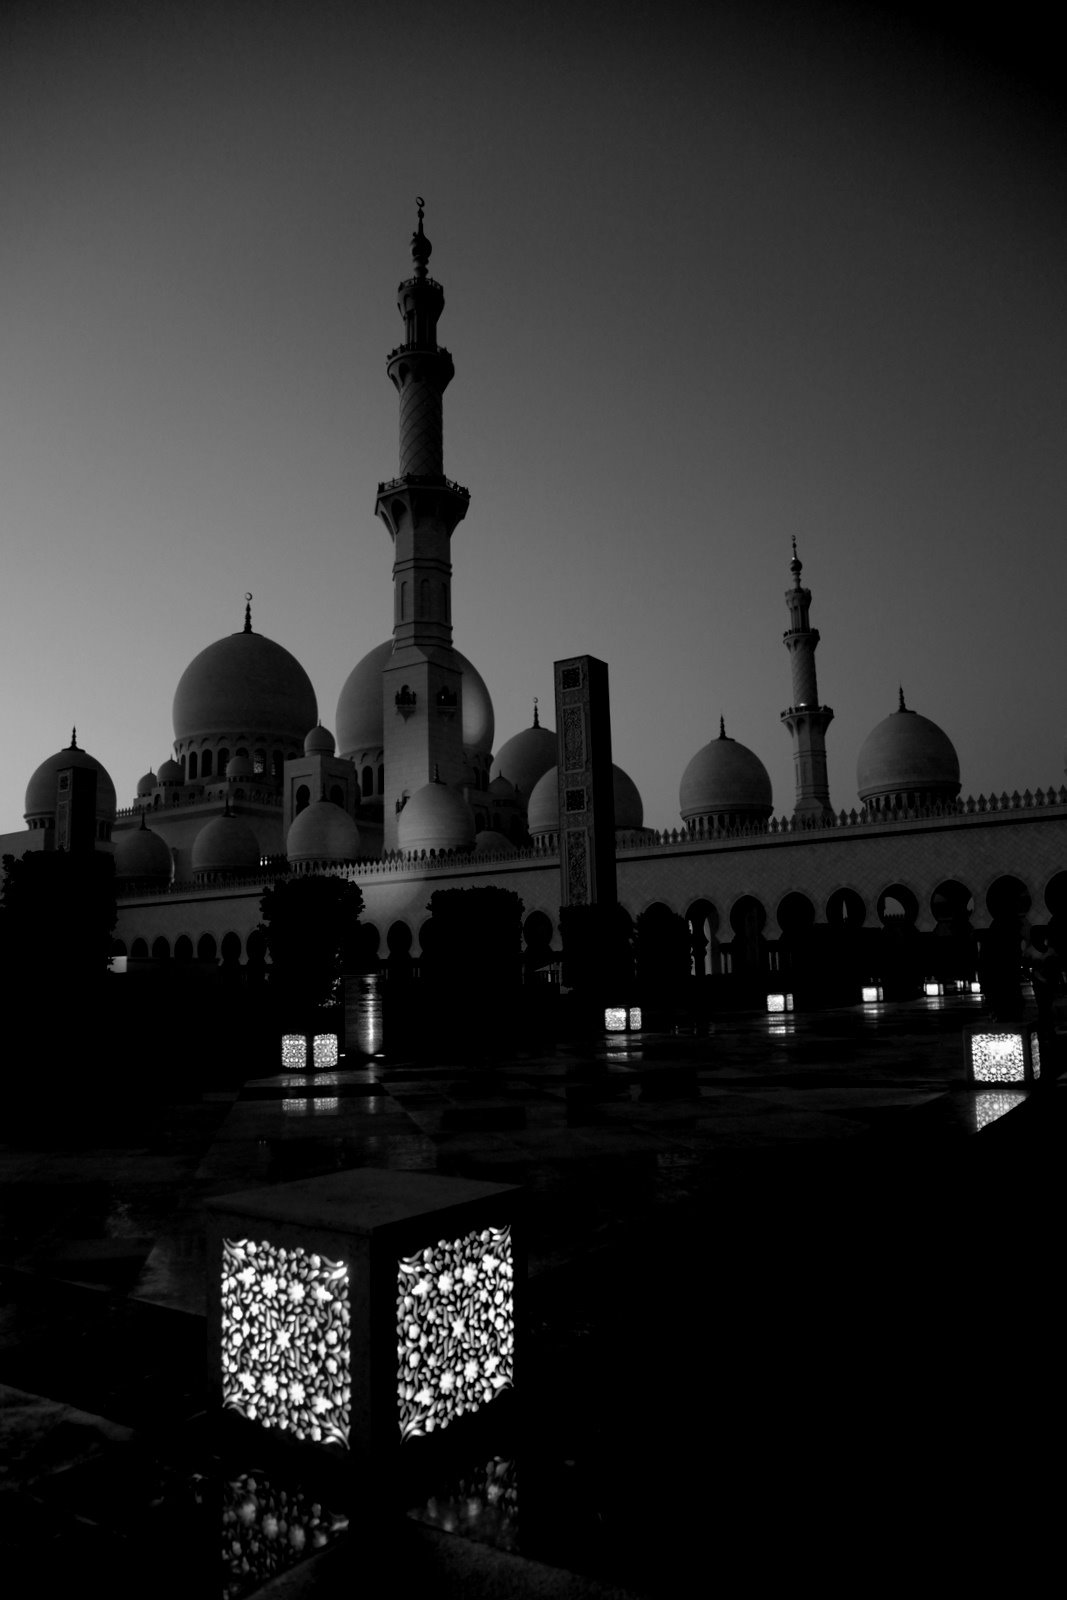 Sheikh Zayed Grand Mosque -Abu Dhabi